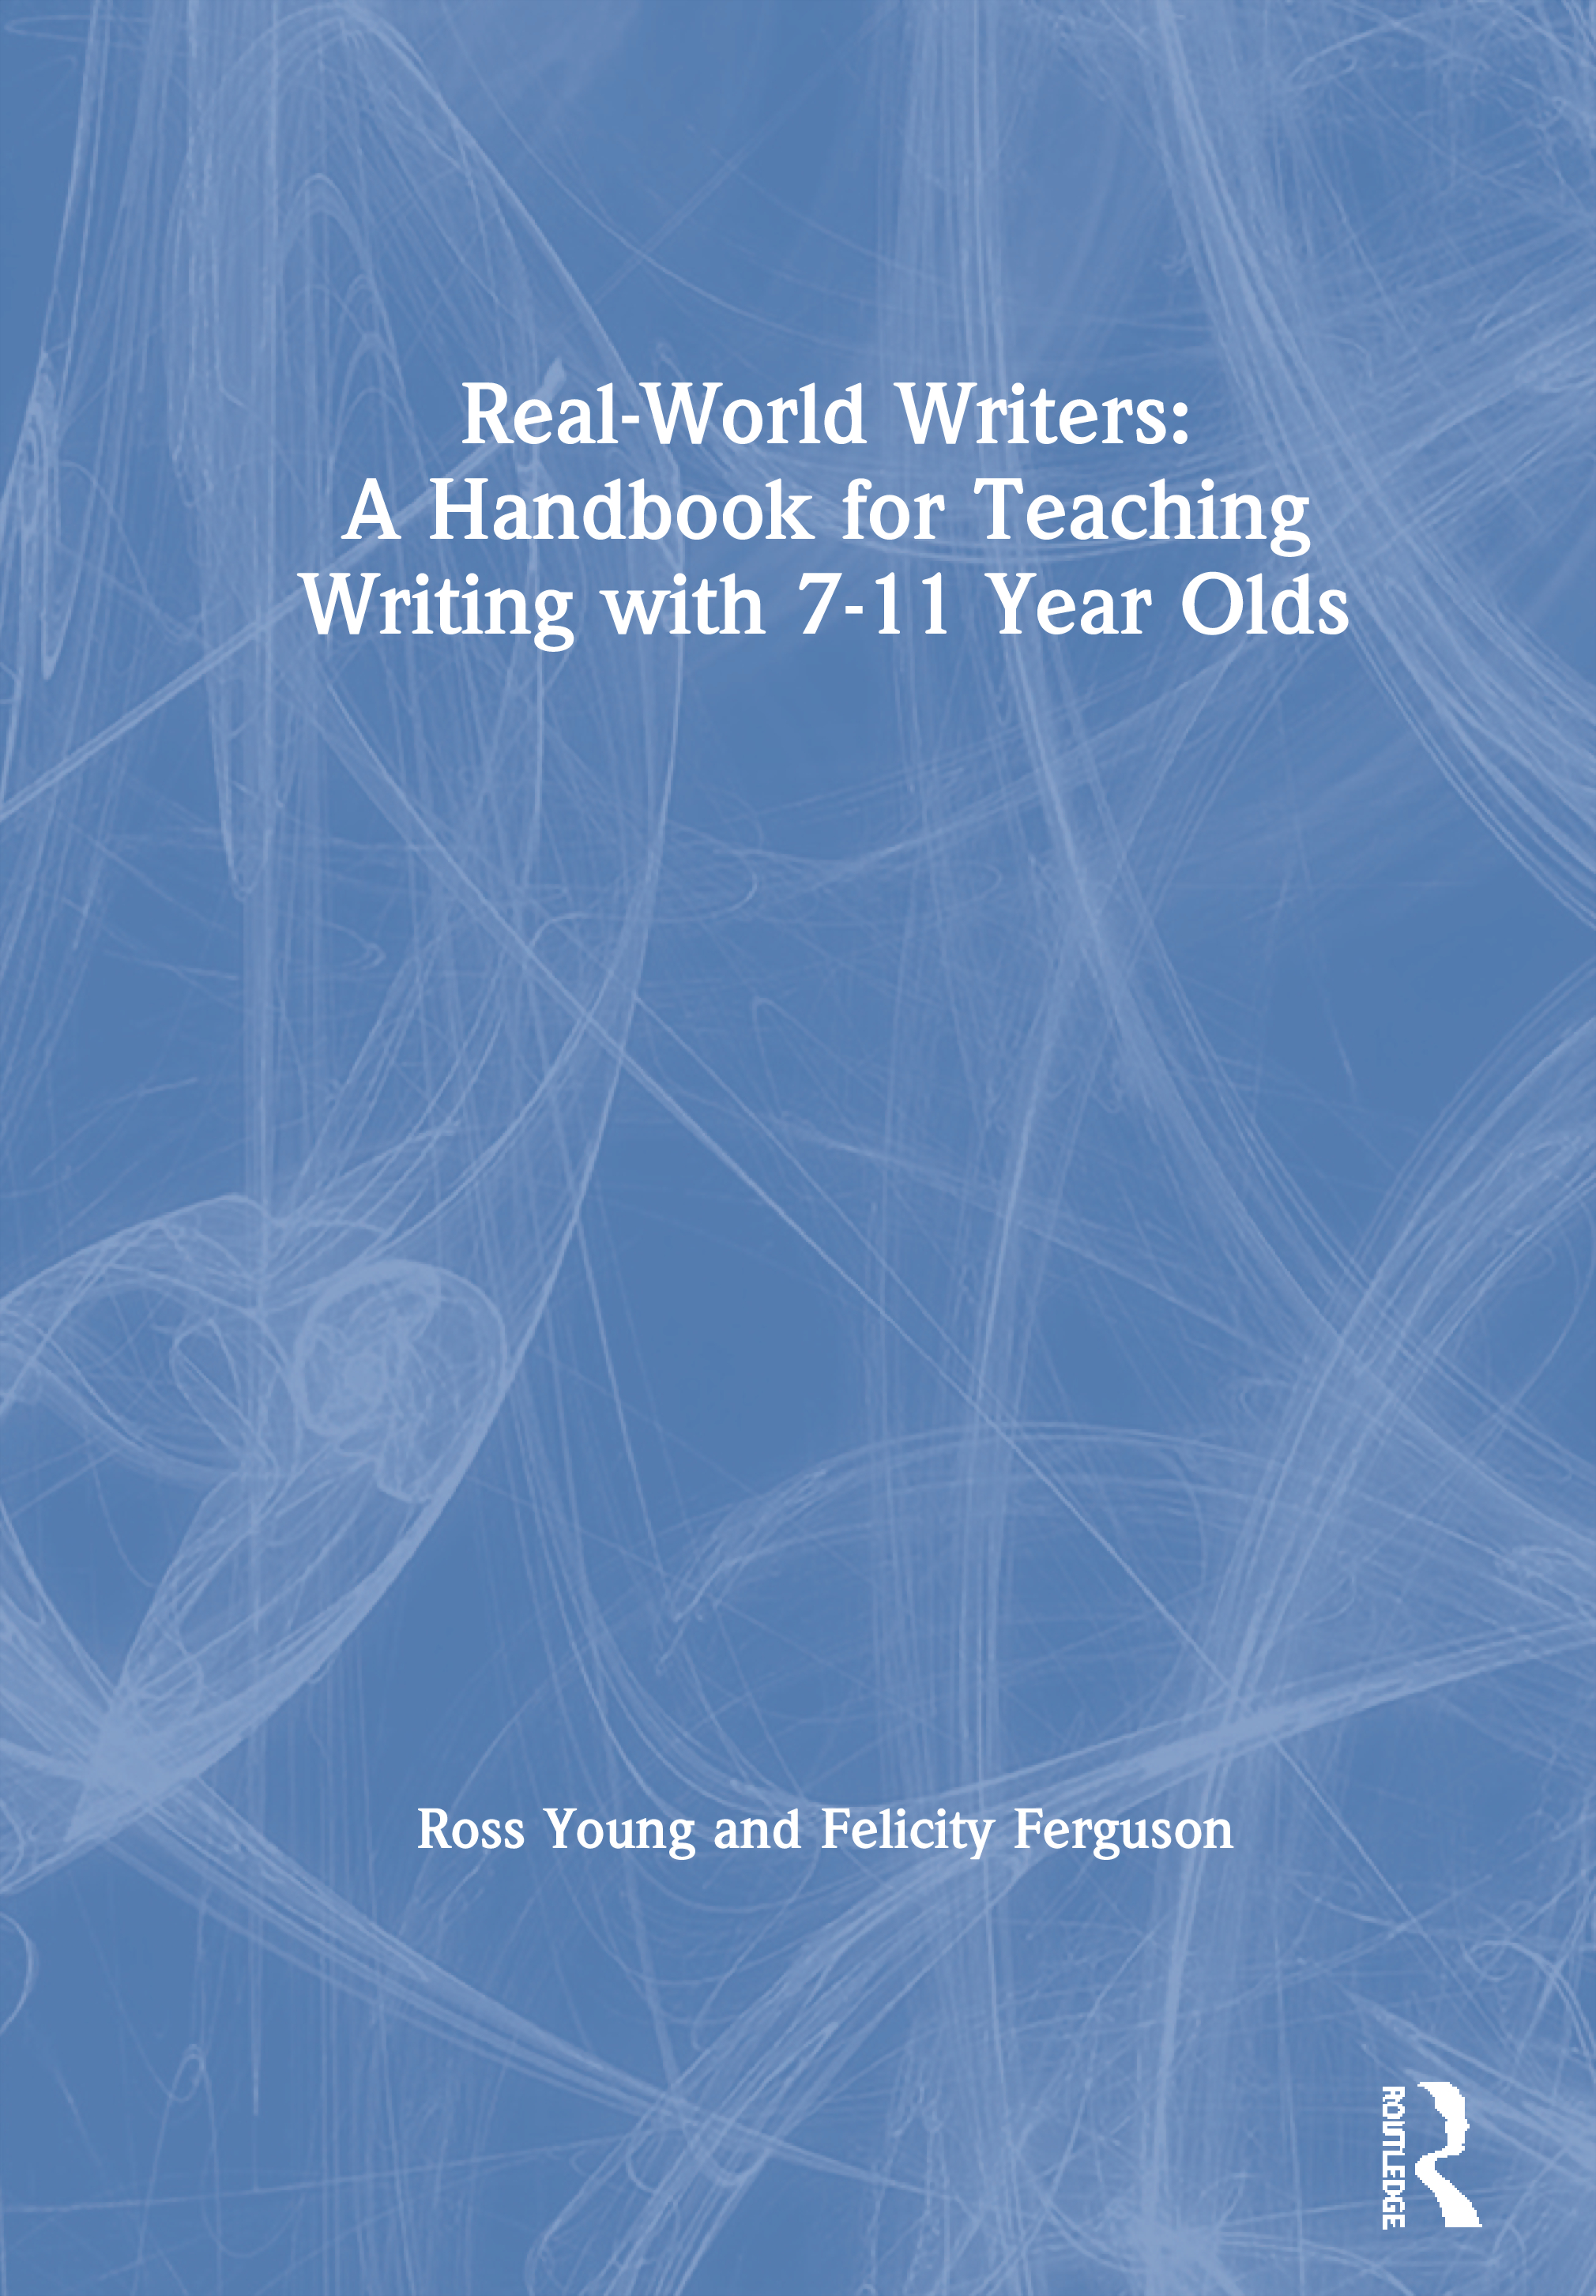 Real-World Writers: A Handbook for Teaching Writing with 7-11 Year Olds: 1st Edition (Paperback) book cover